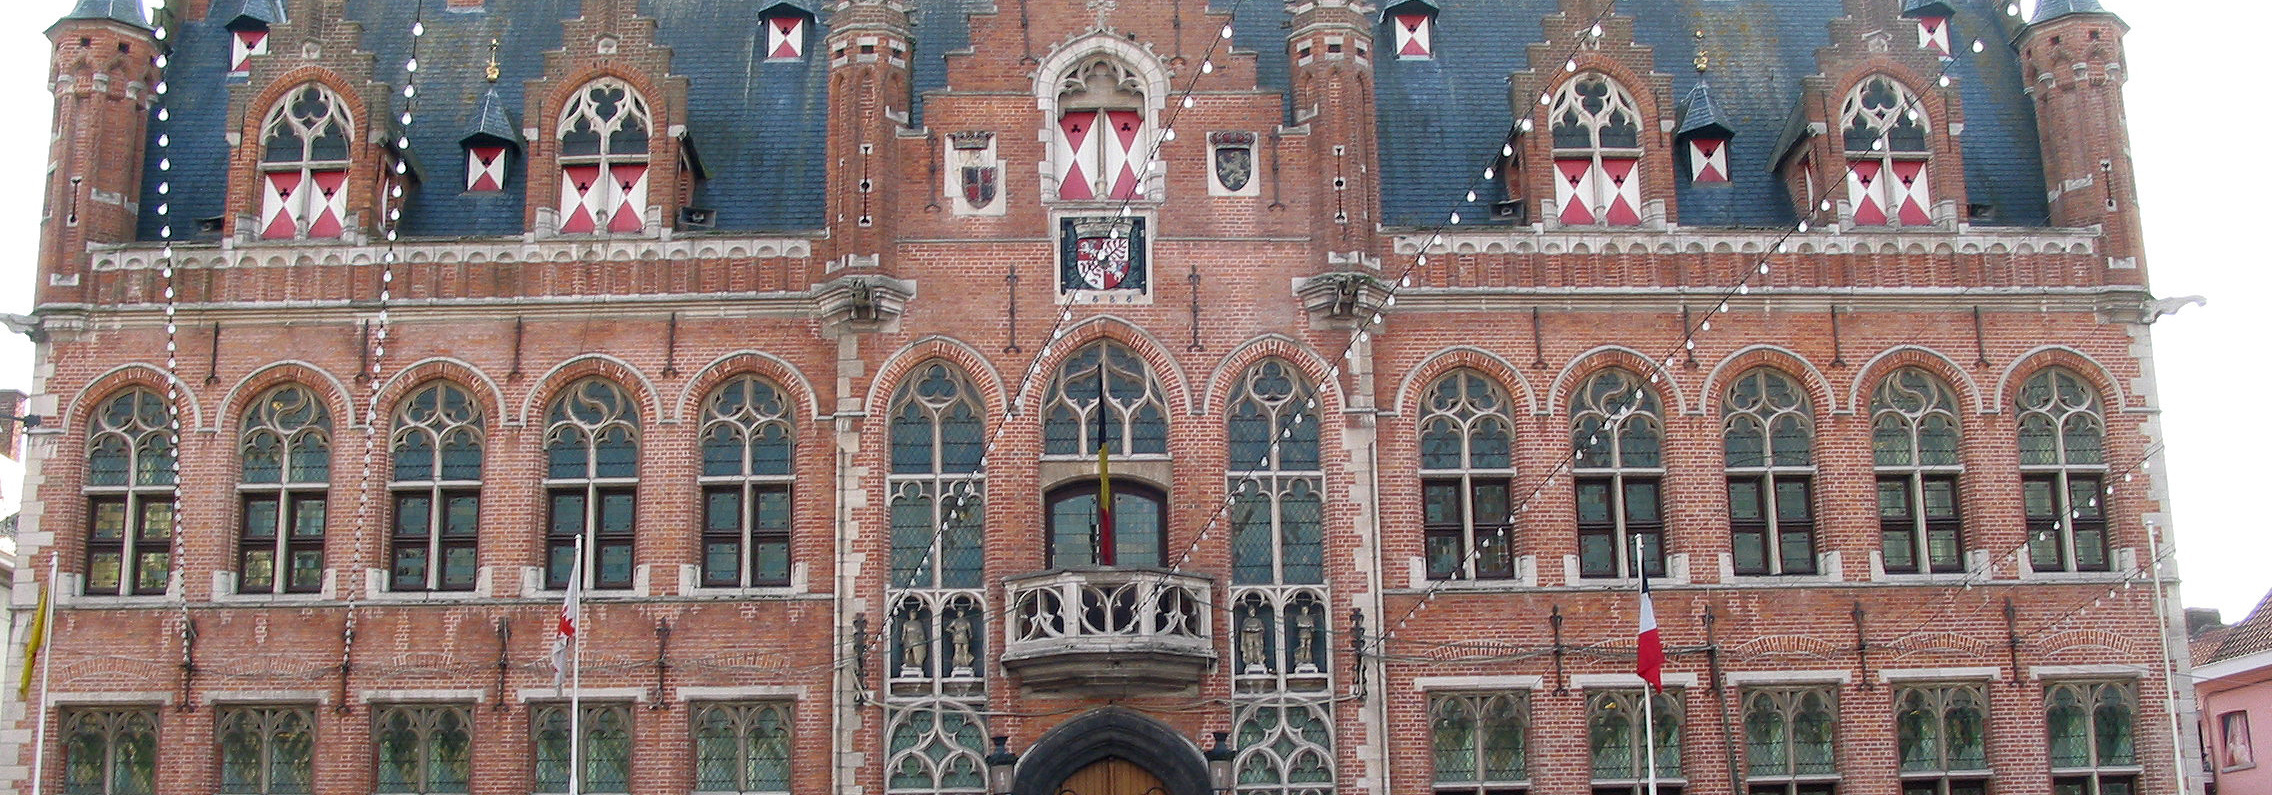 Rathaus in Mouscron, Quelle Wikimedia: https://de.wikipedia.org/wiki/Mouscron